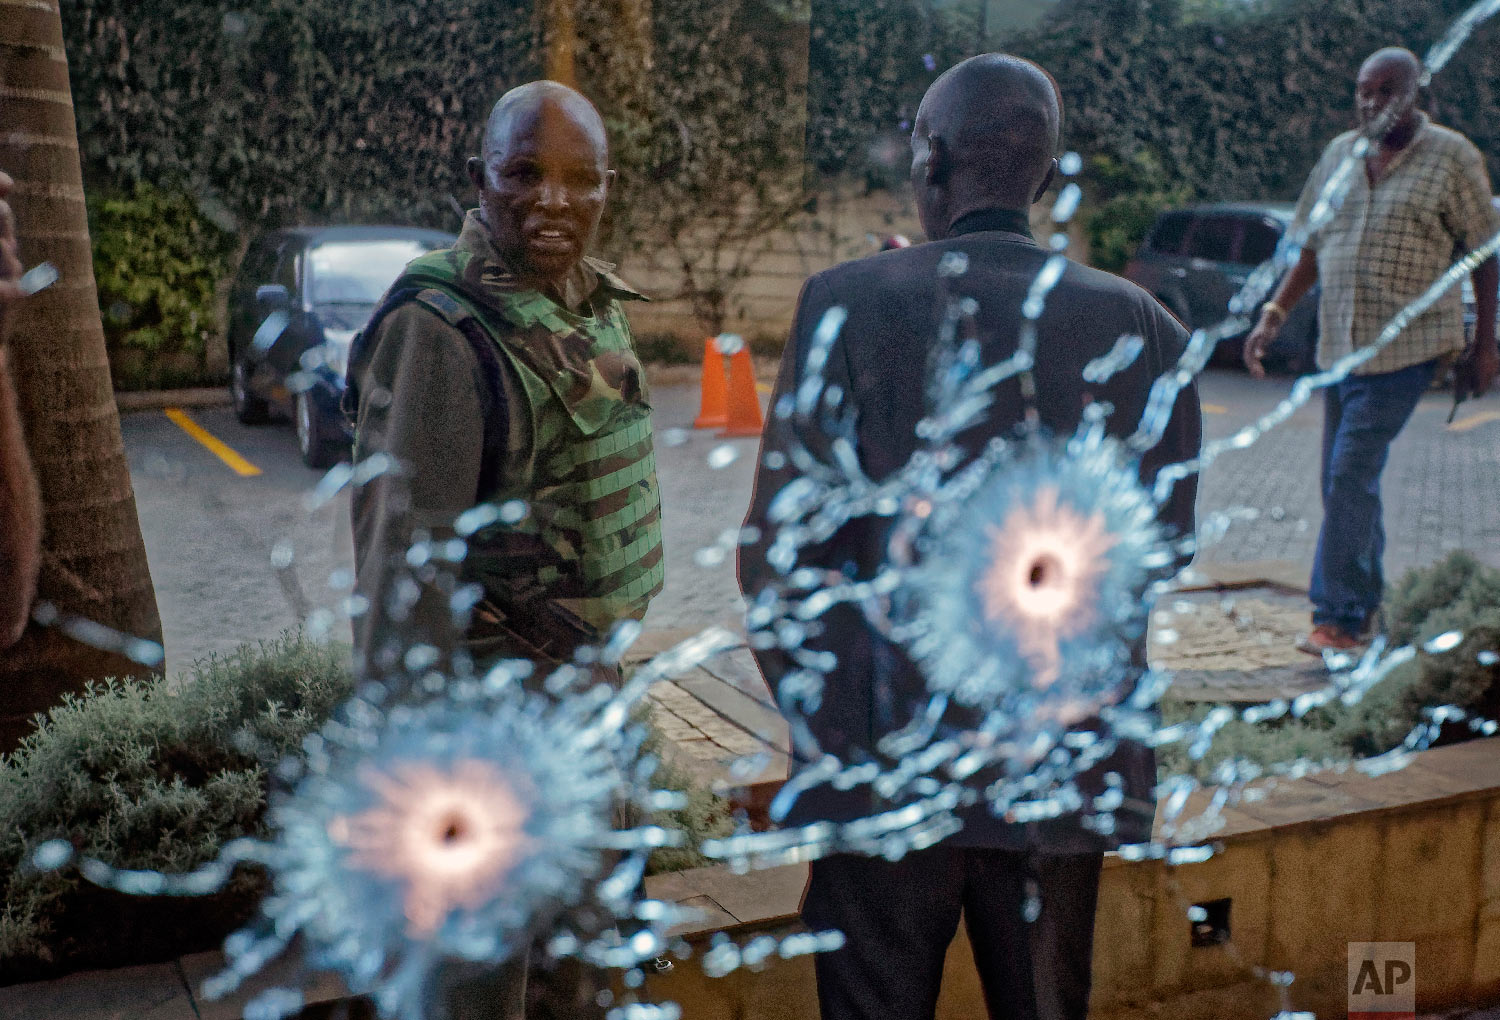 A member of the security forces is seen reflected in a window as he looks at bullet-holes, at a hotel complex in Nairobi, Kenya, Jan. 15, 2019. (AP Photo/Ben Curtis)